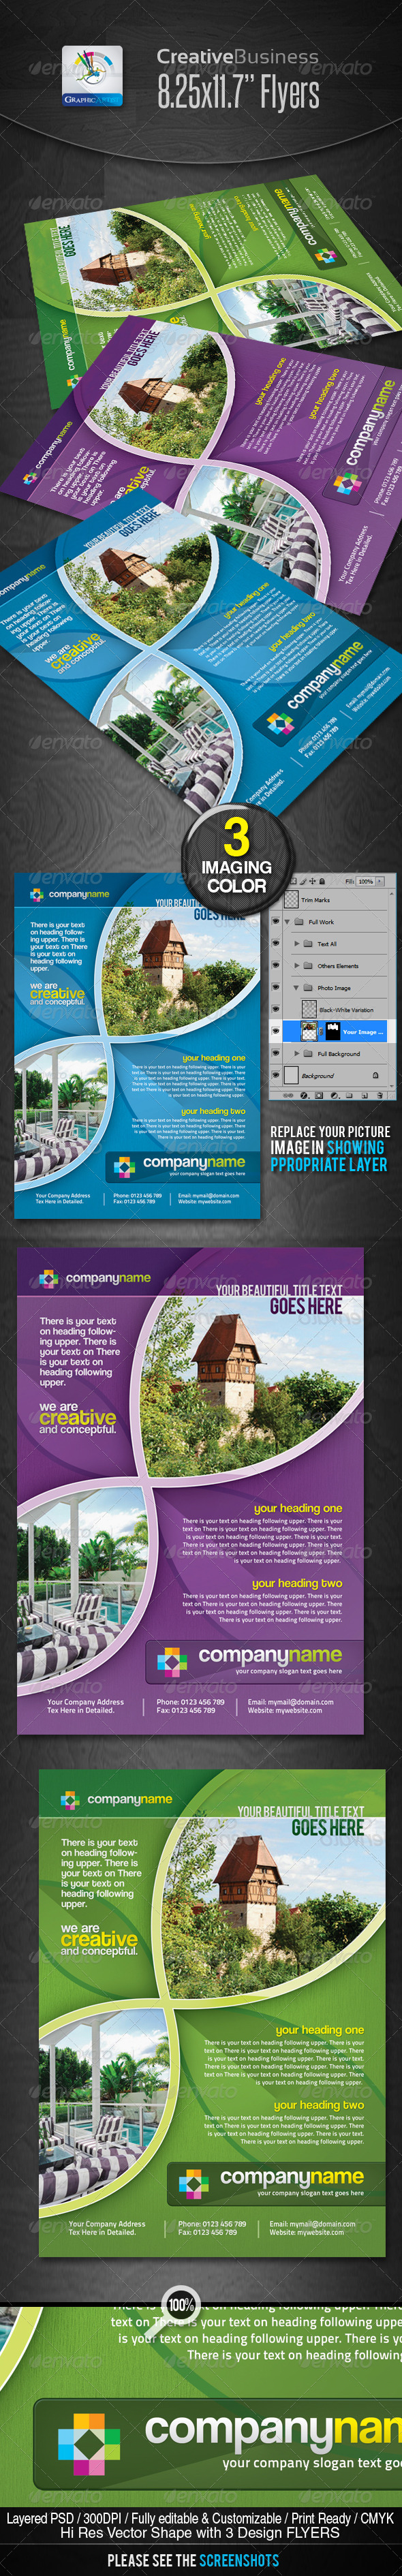 Creative Corporate Business Flyers/Ads - Corporate Flyers